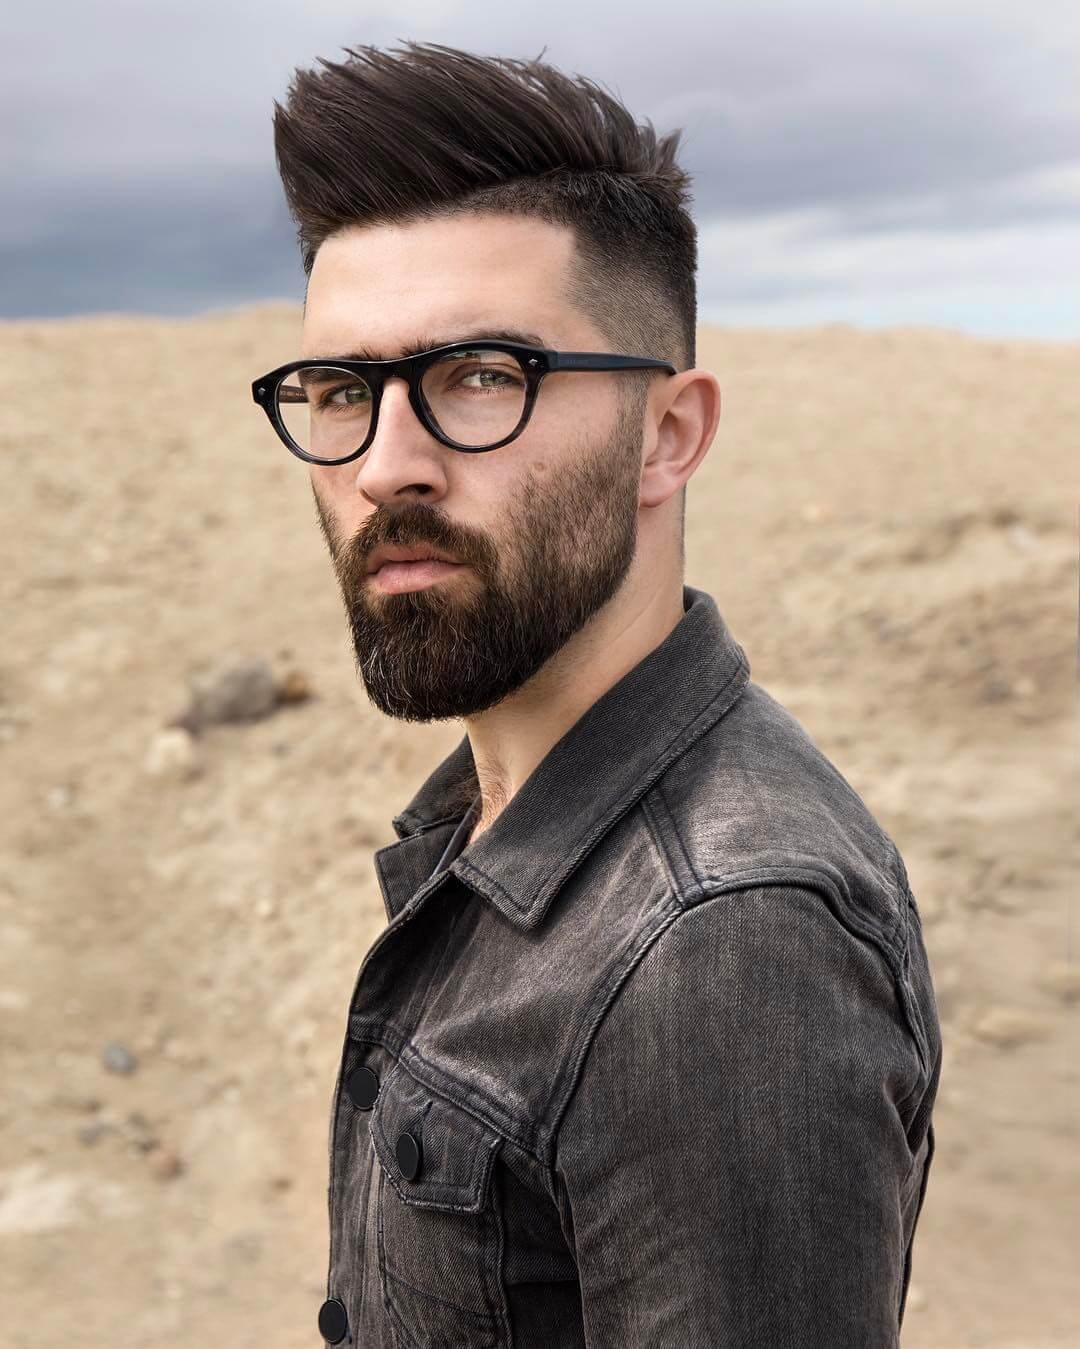 The Right Hair, Beard, and Glasses Styles, According to ...